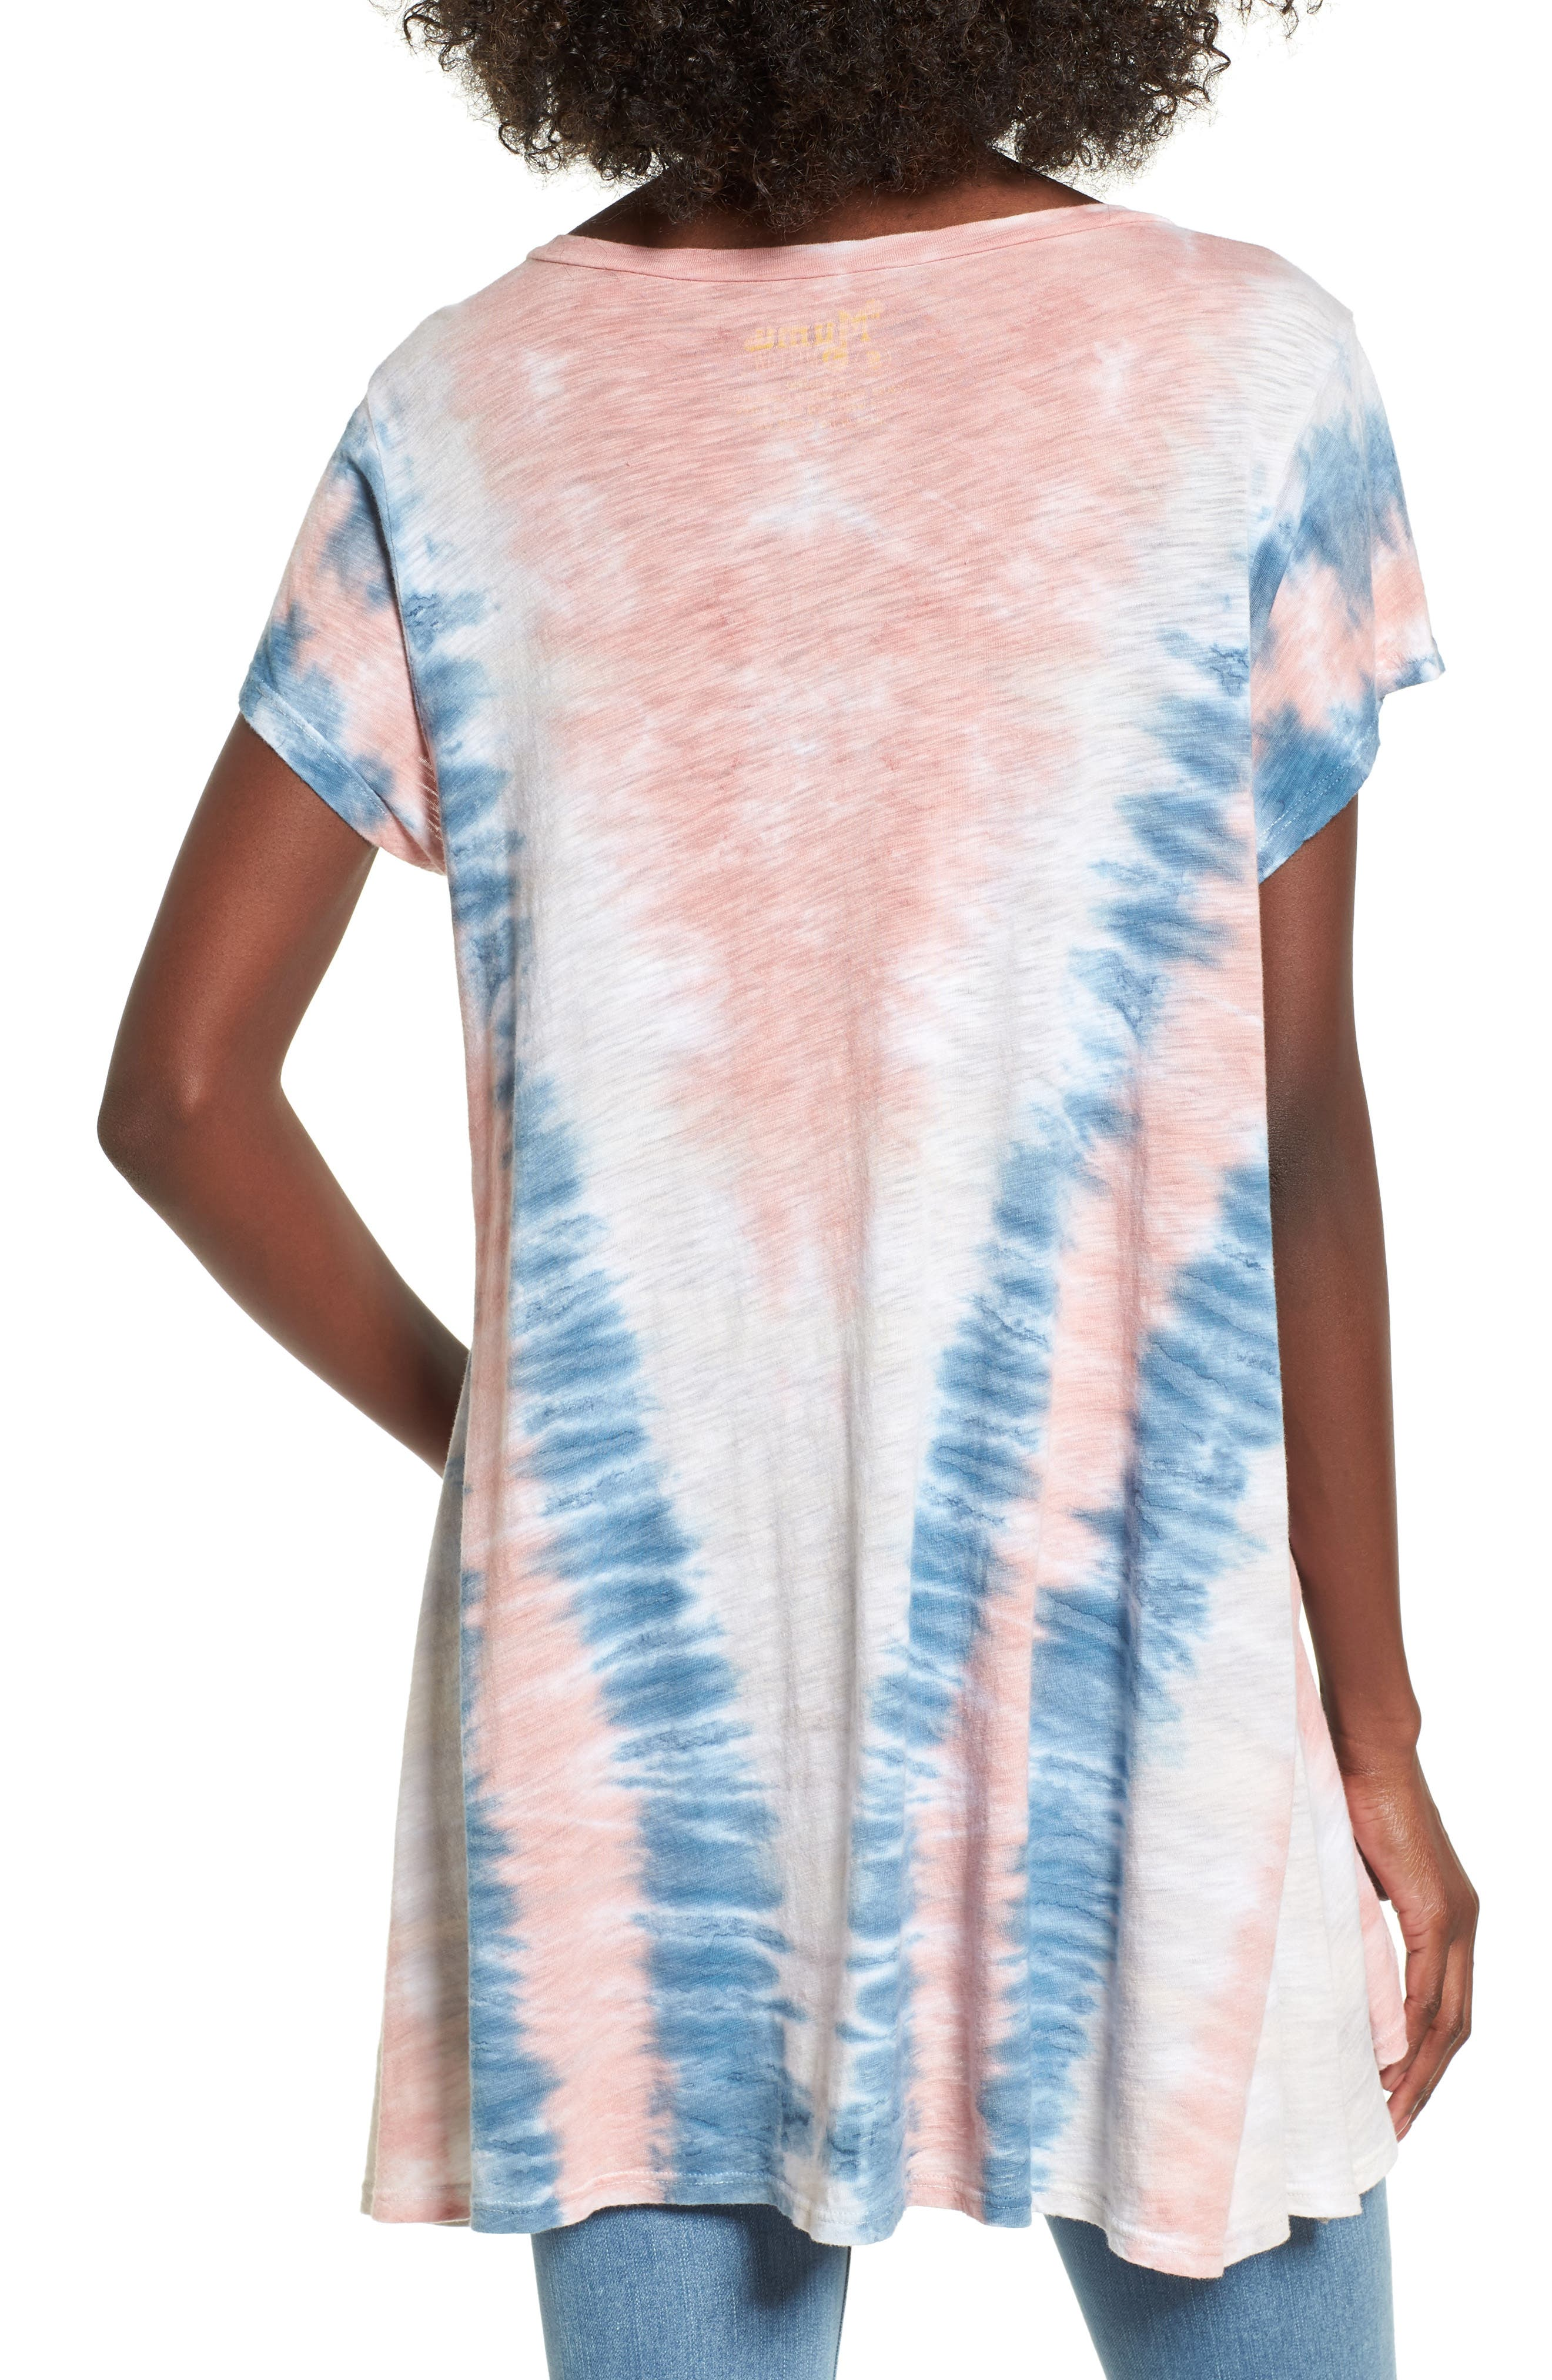 Hetland Swing Tee,                             Alternate thumbnail 2, color,                             Desert Sky Tie Dye